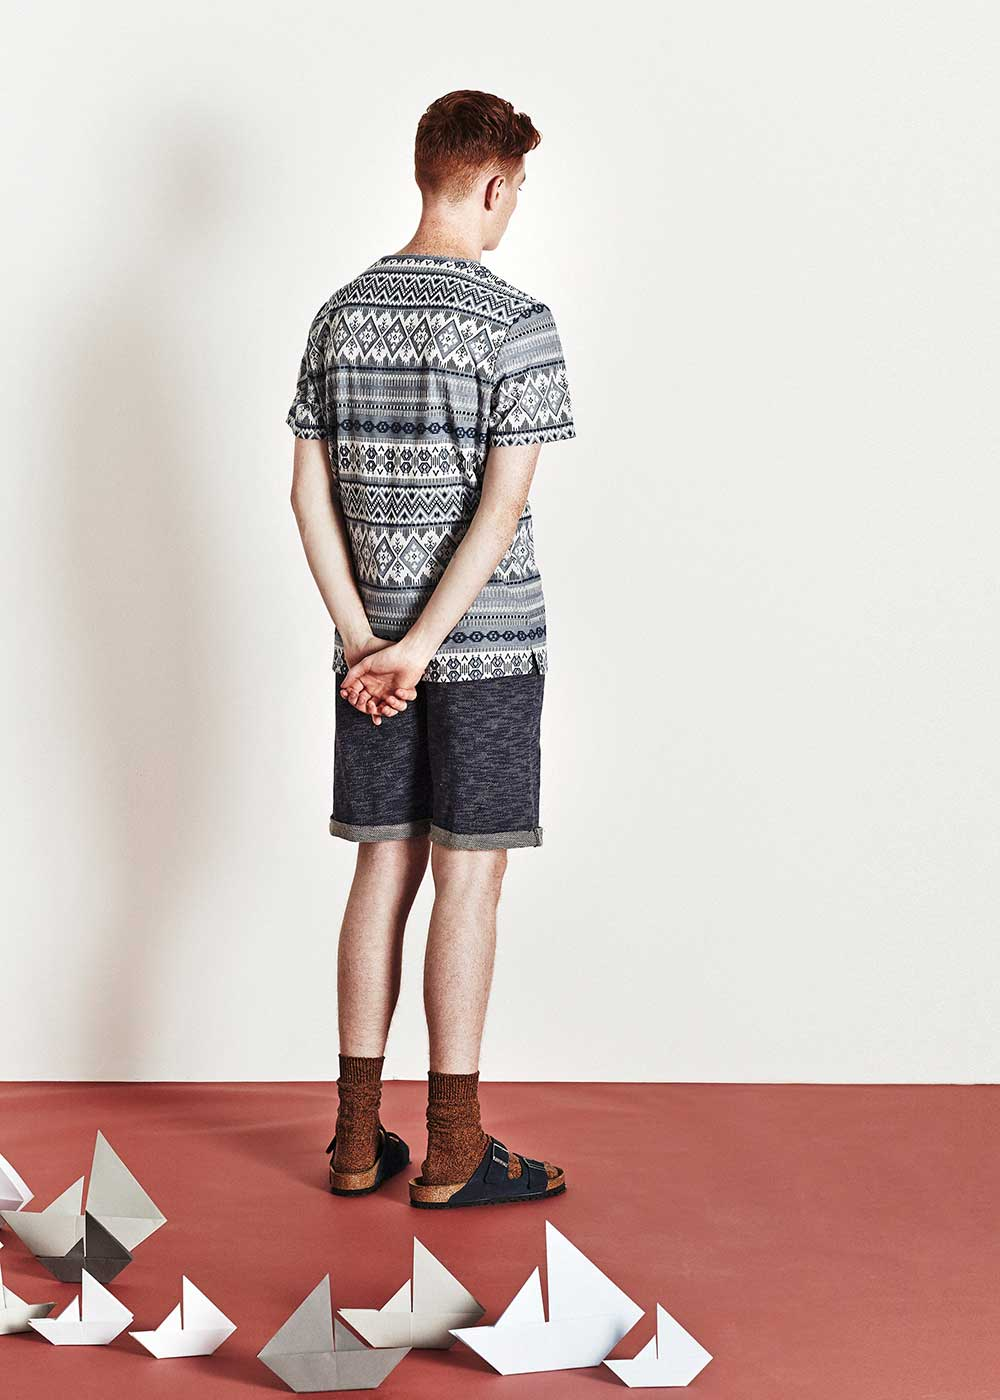 native-youth-ss15-image-15